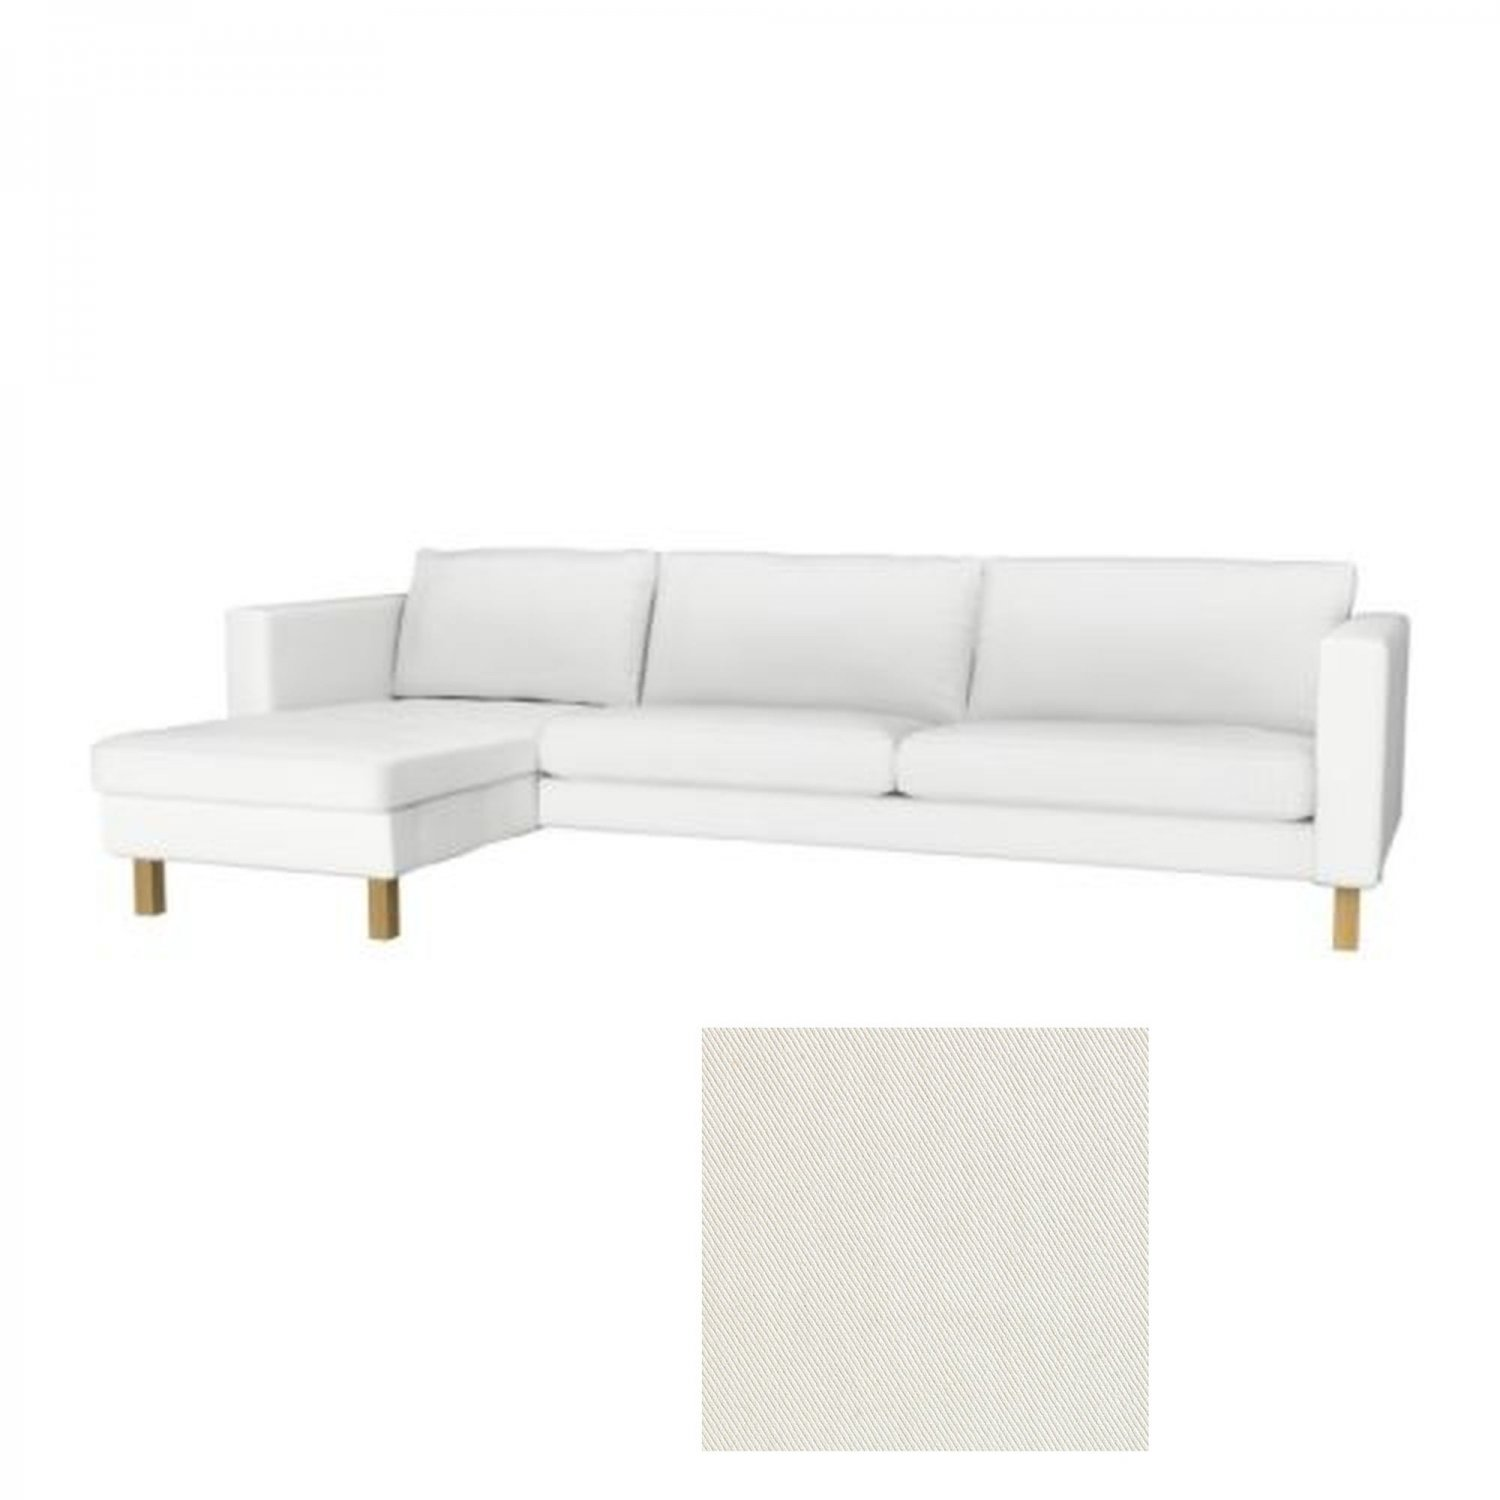 white lounge chair covers bar height adirondack chairs ikea karlstad 3 seat sofa and chaise slipcover cover